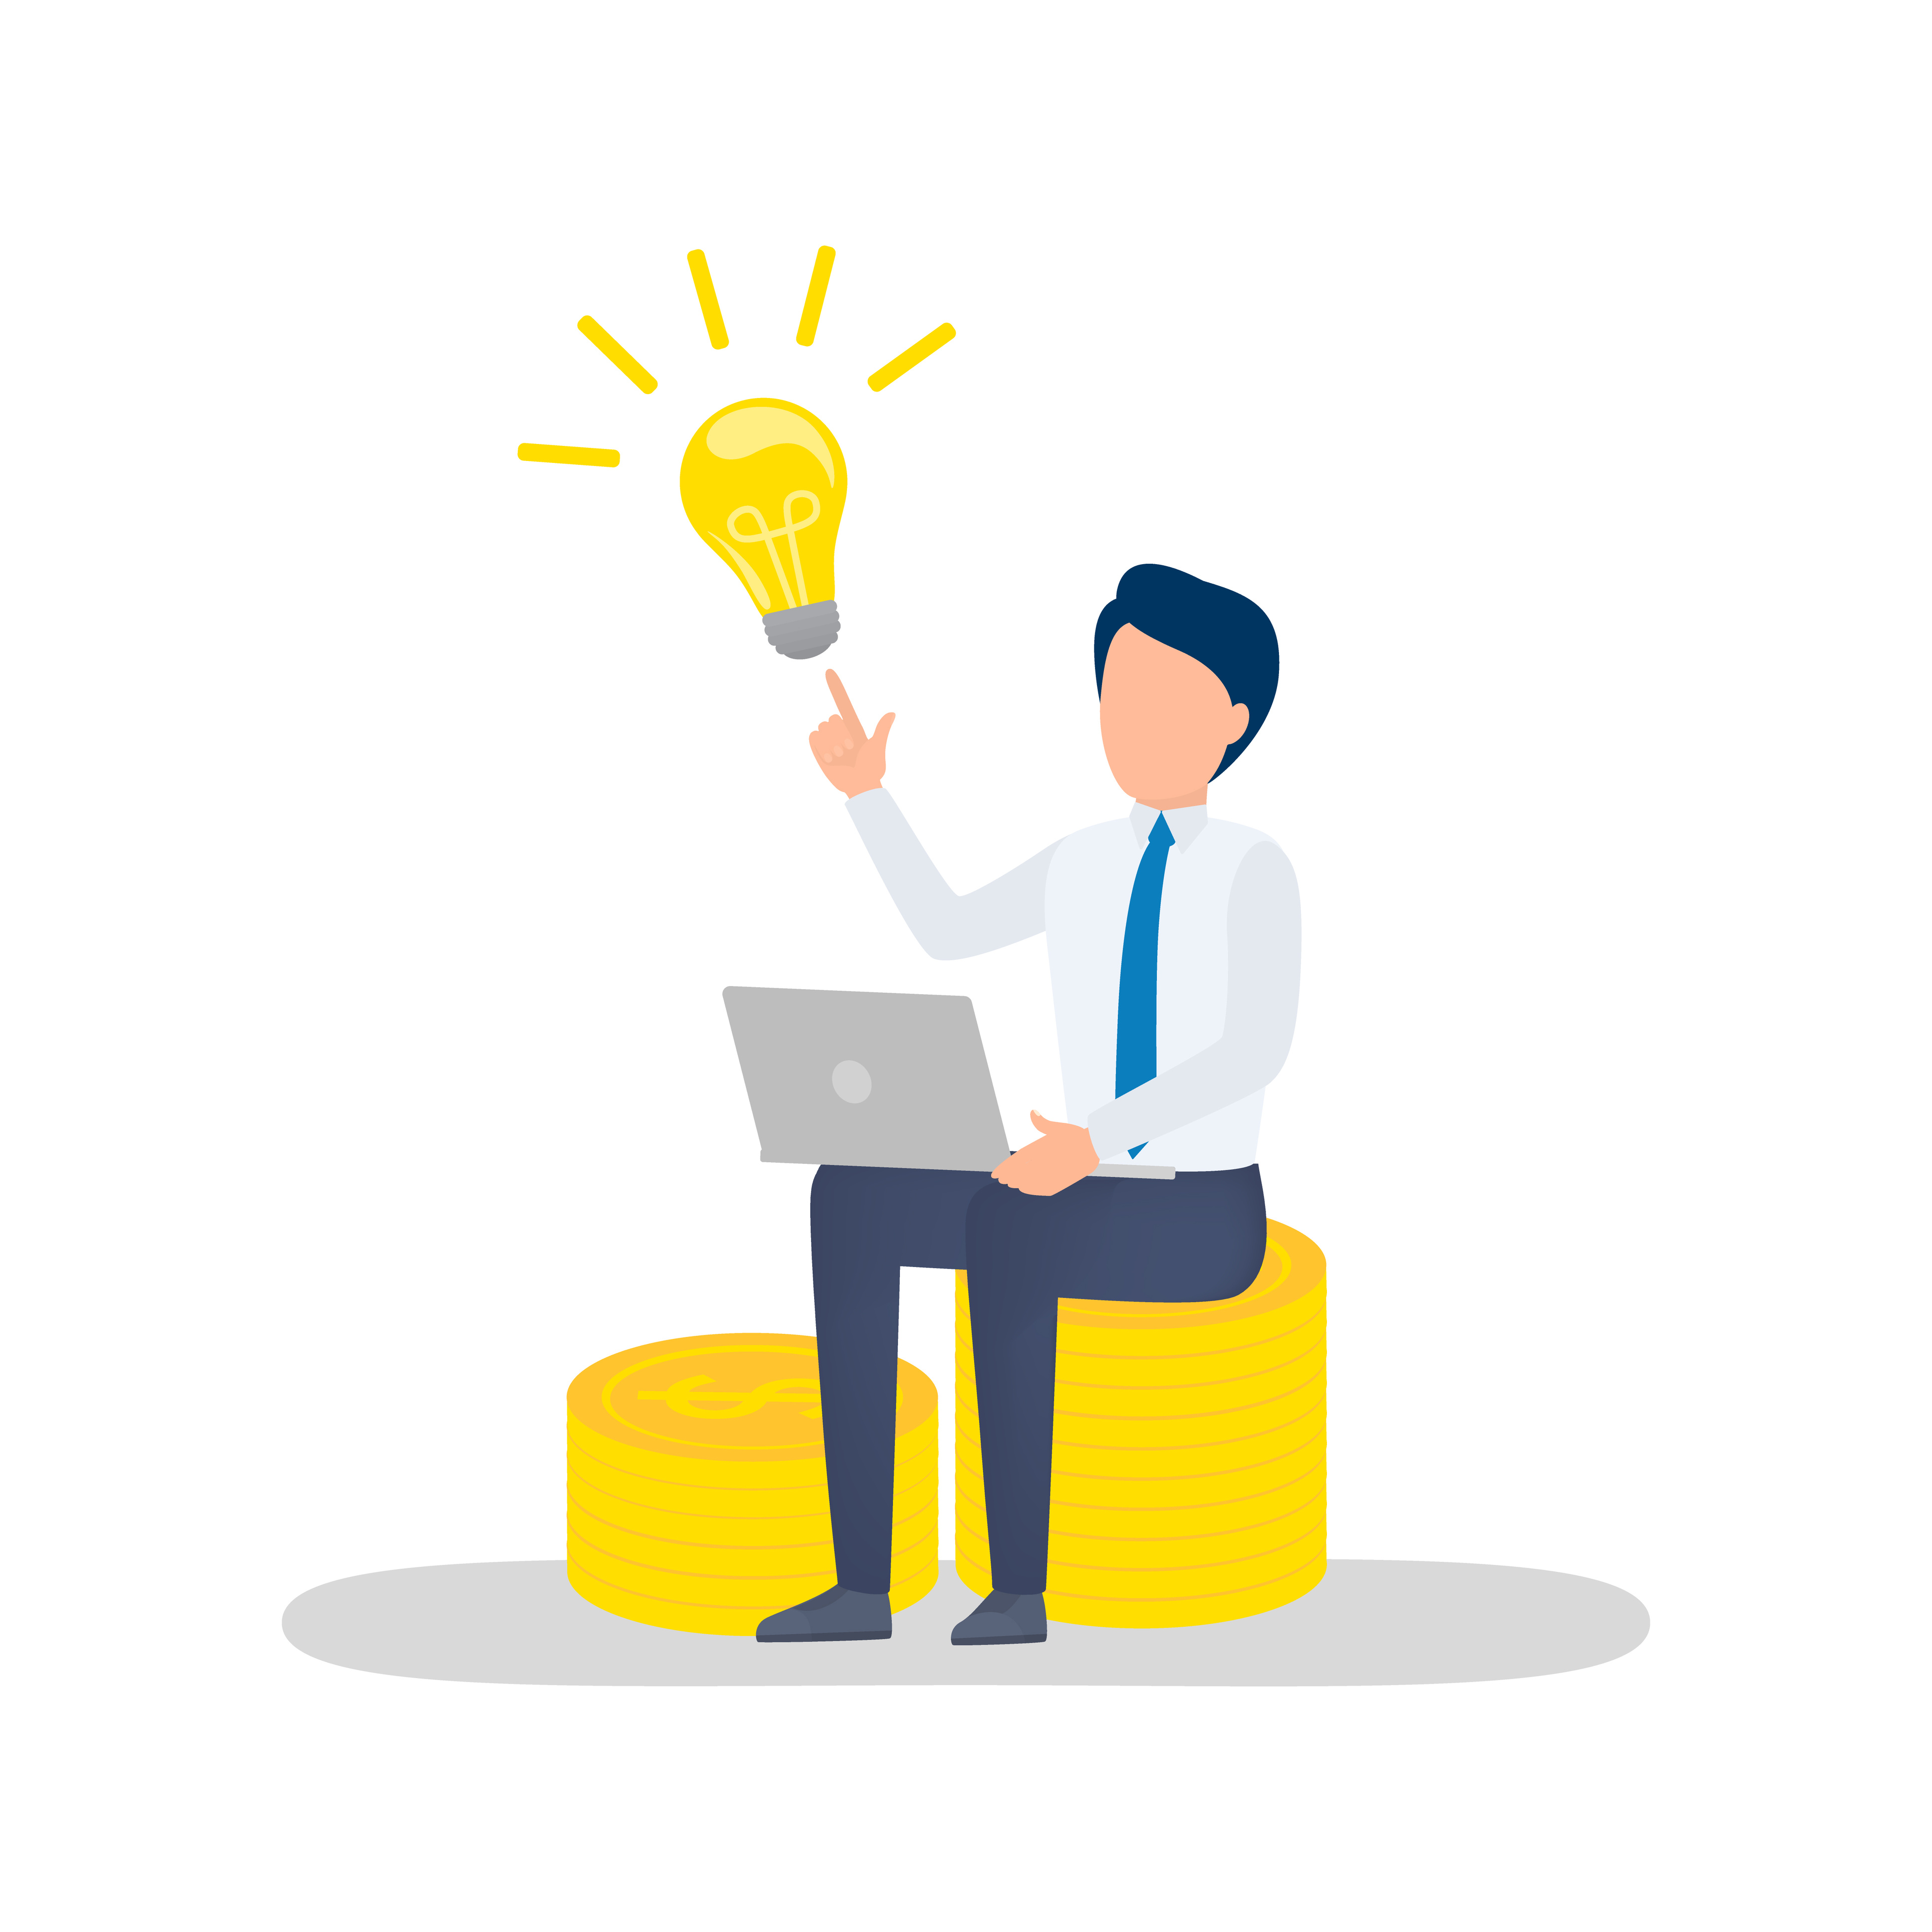 Illustration of a person wearing a tie, sitting down using a laptop, and pointing to a large lightbulb.